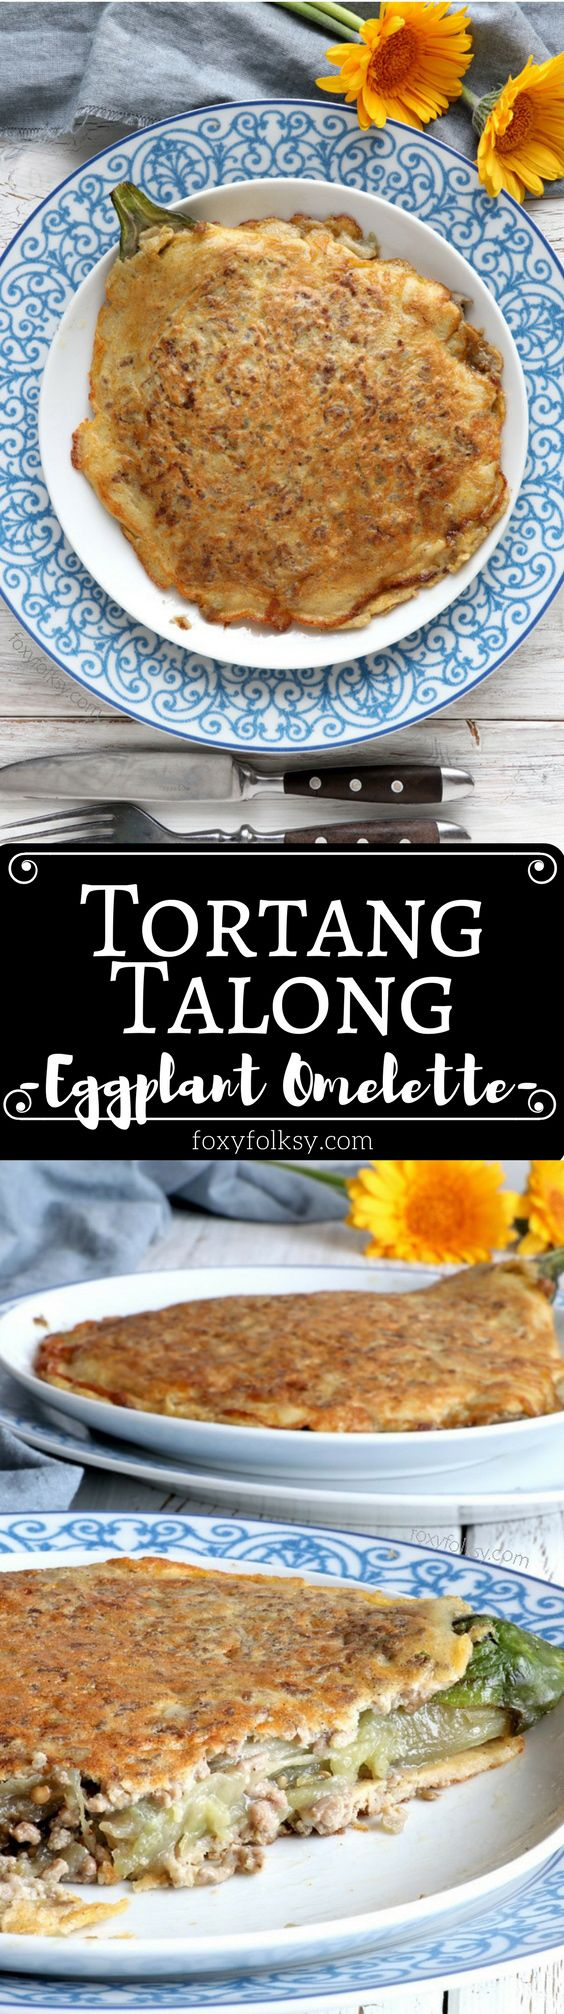 Get this Tortang Talong (Eggplant Omelette) recipe for a hearty Filipino breakfast! | www.foxyfolksy.com